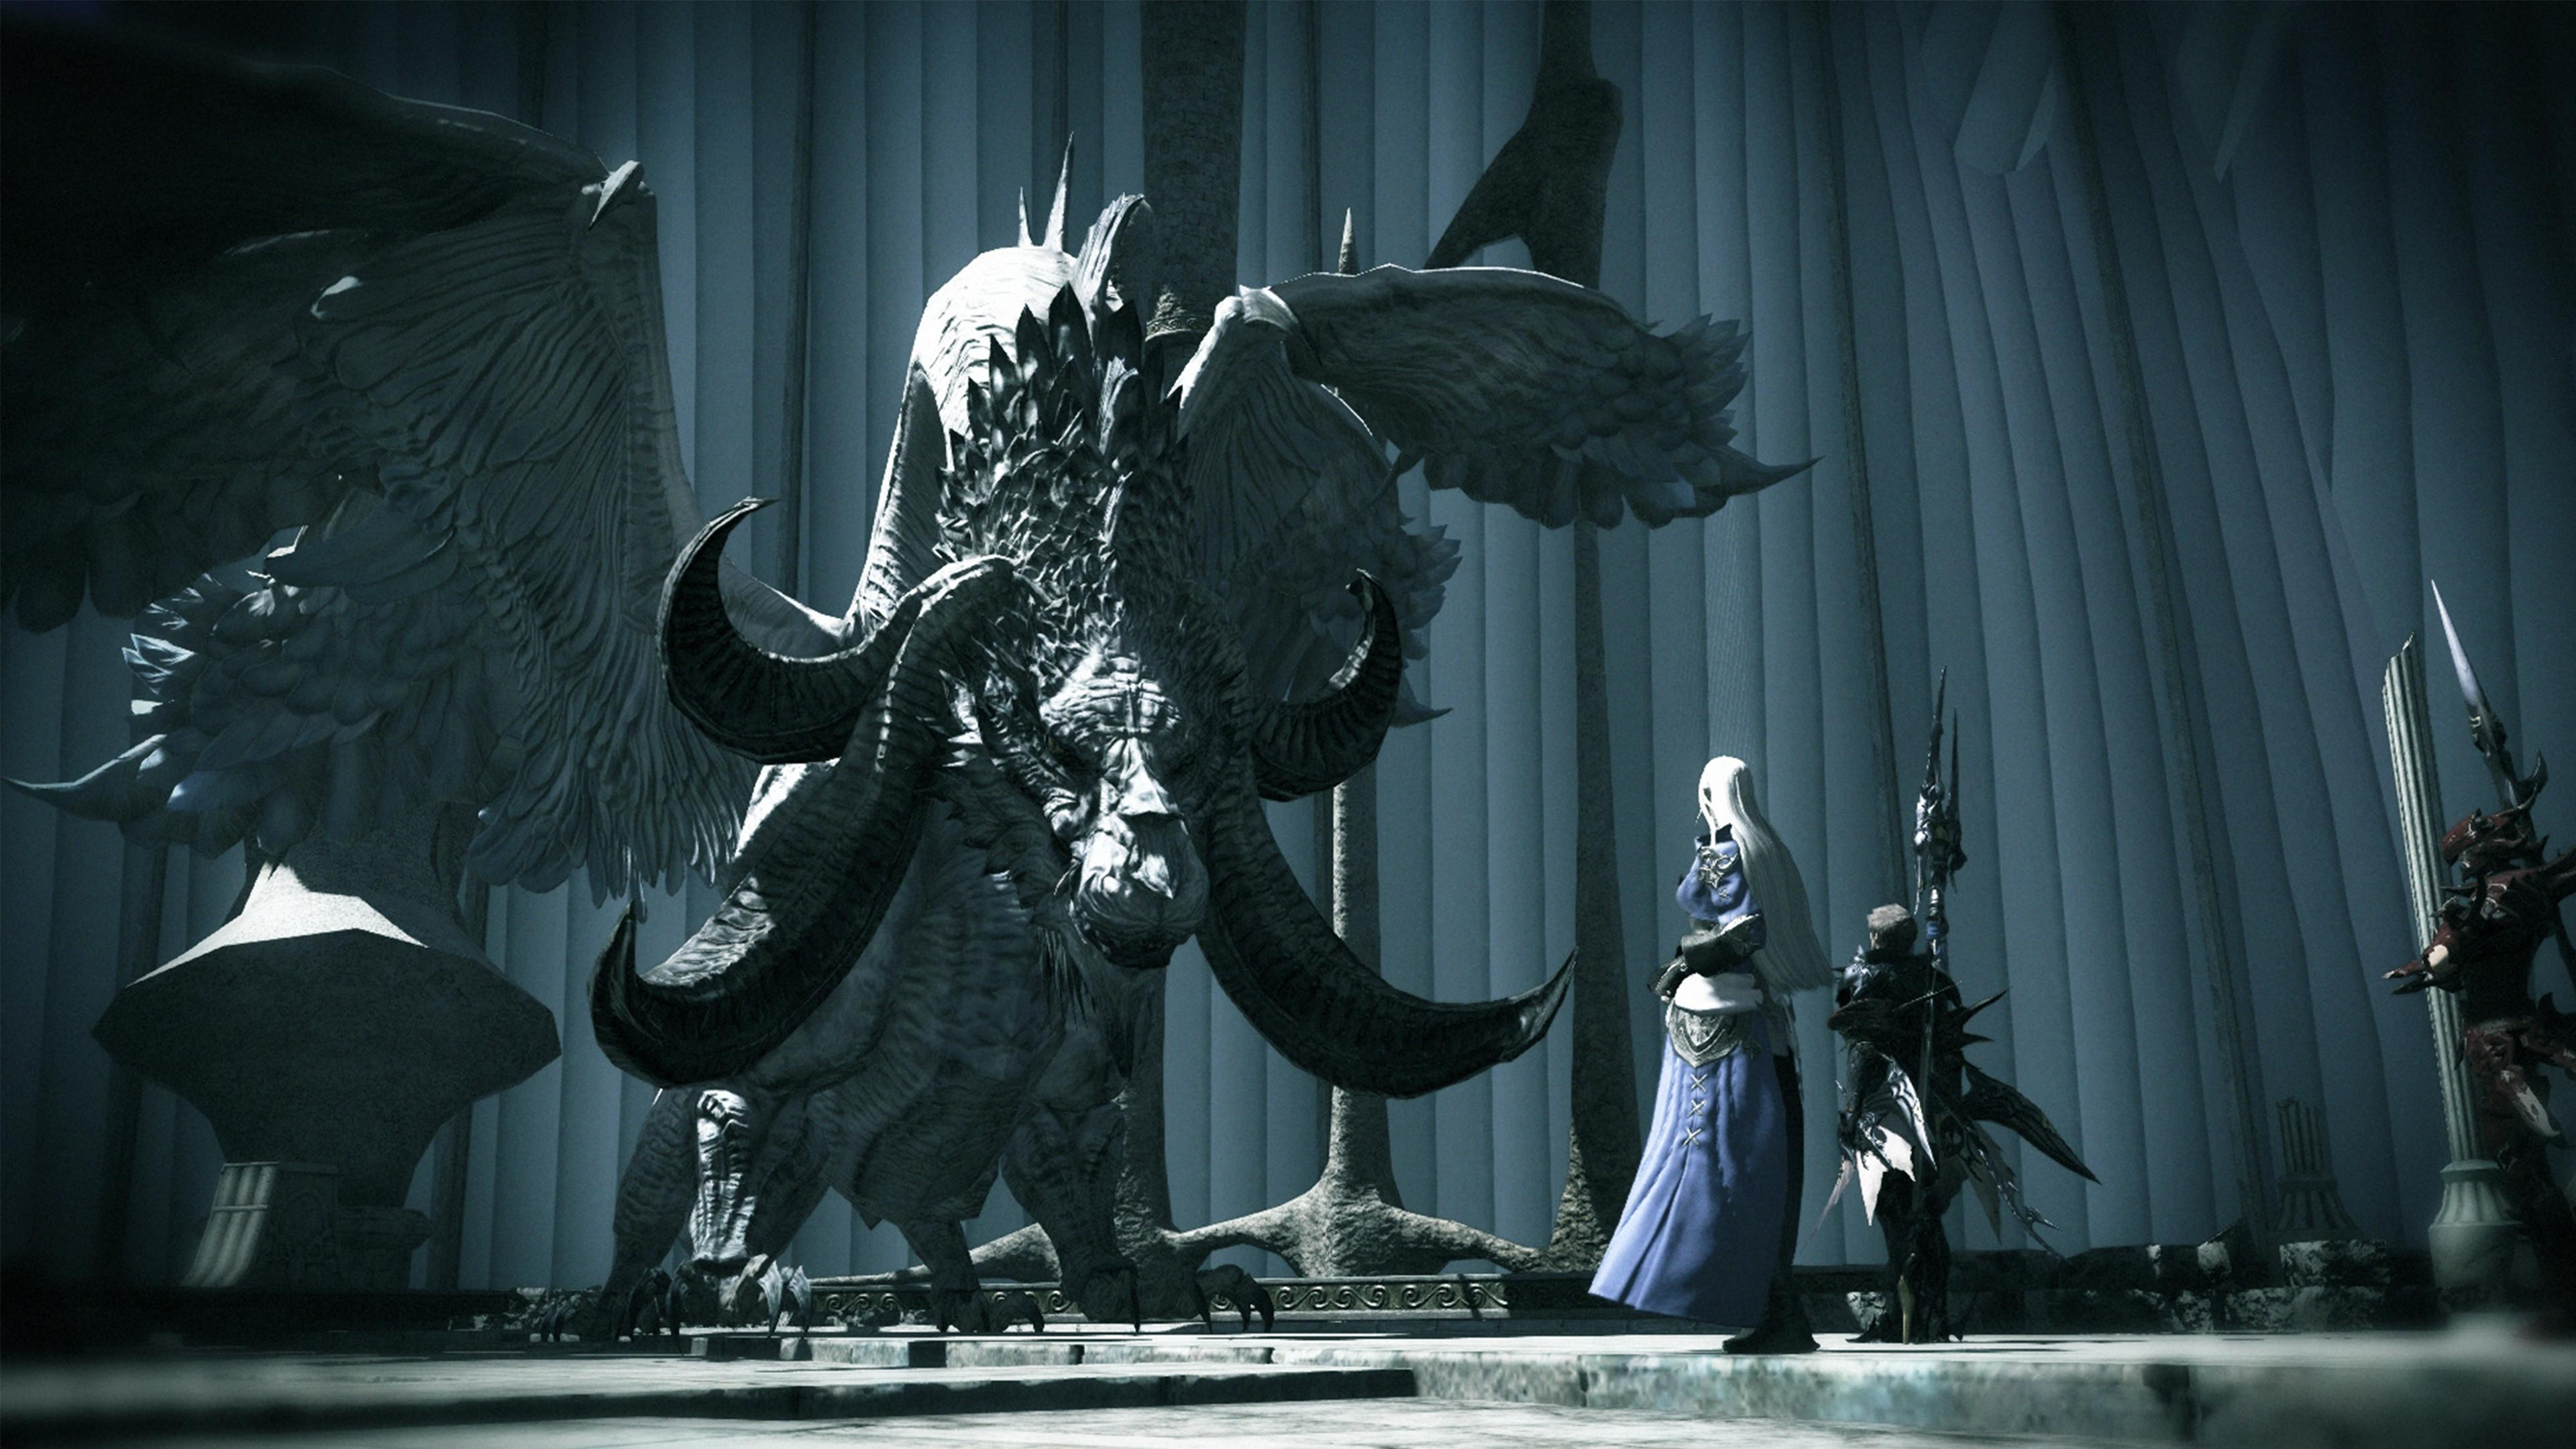 Final Fantasy 14 Heavensward is considered one of the best story arcs in any Final Fantasy game so far